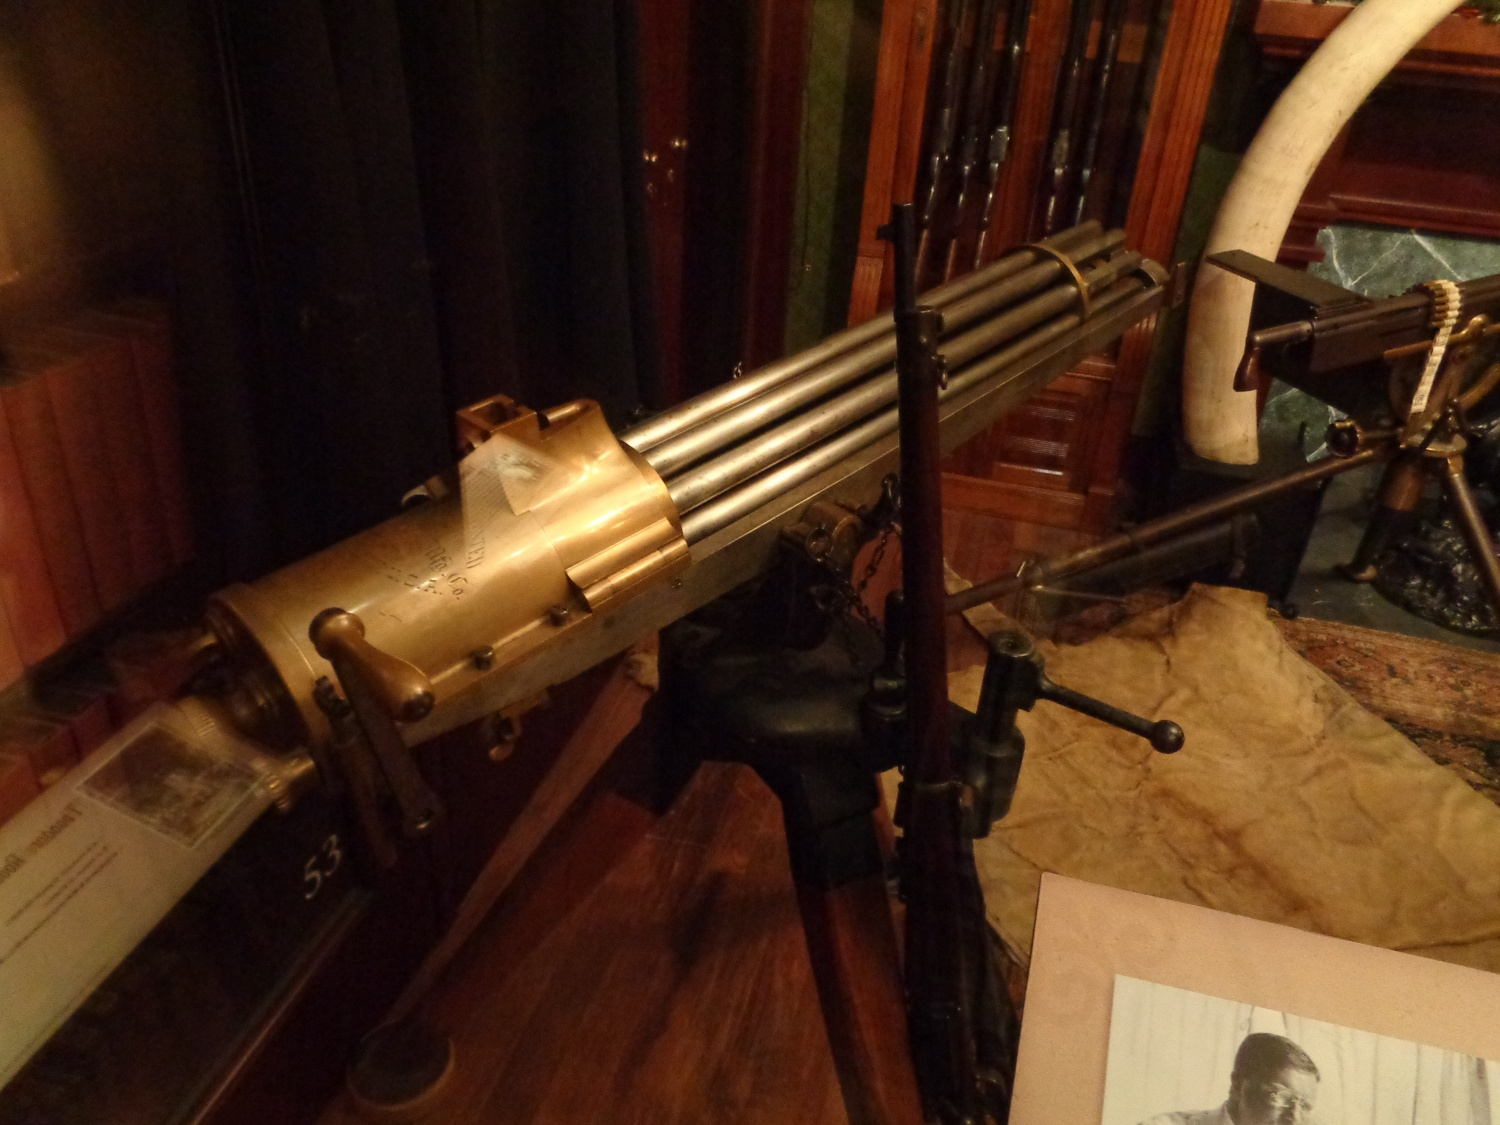 Teddy roosevelt guns to be displayed at nra national - Dsc001951 Jpg